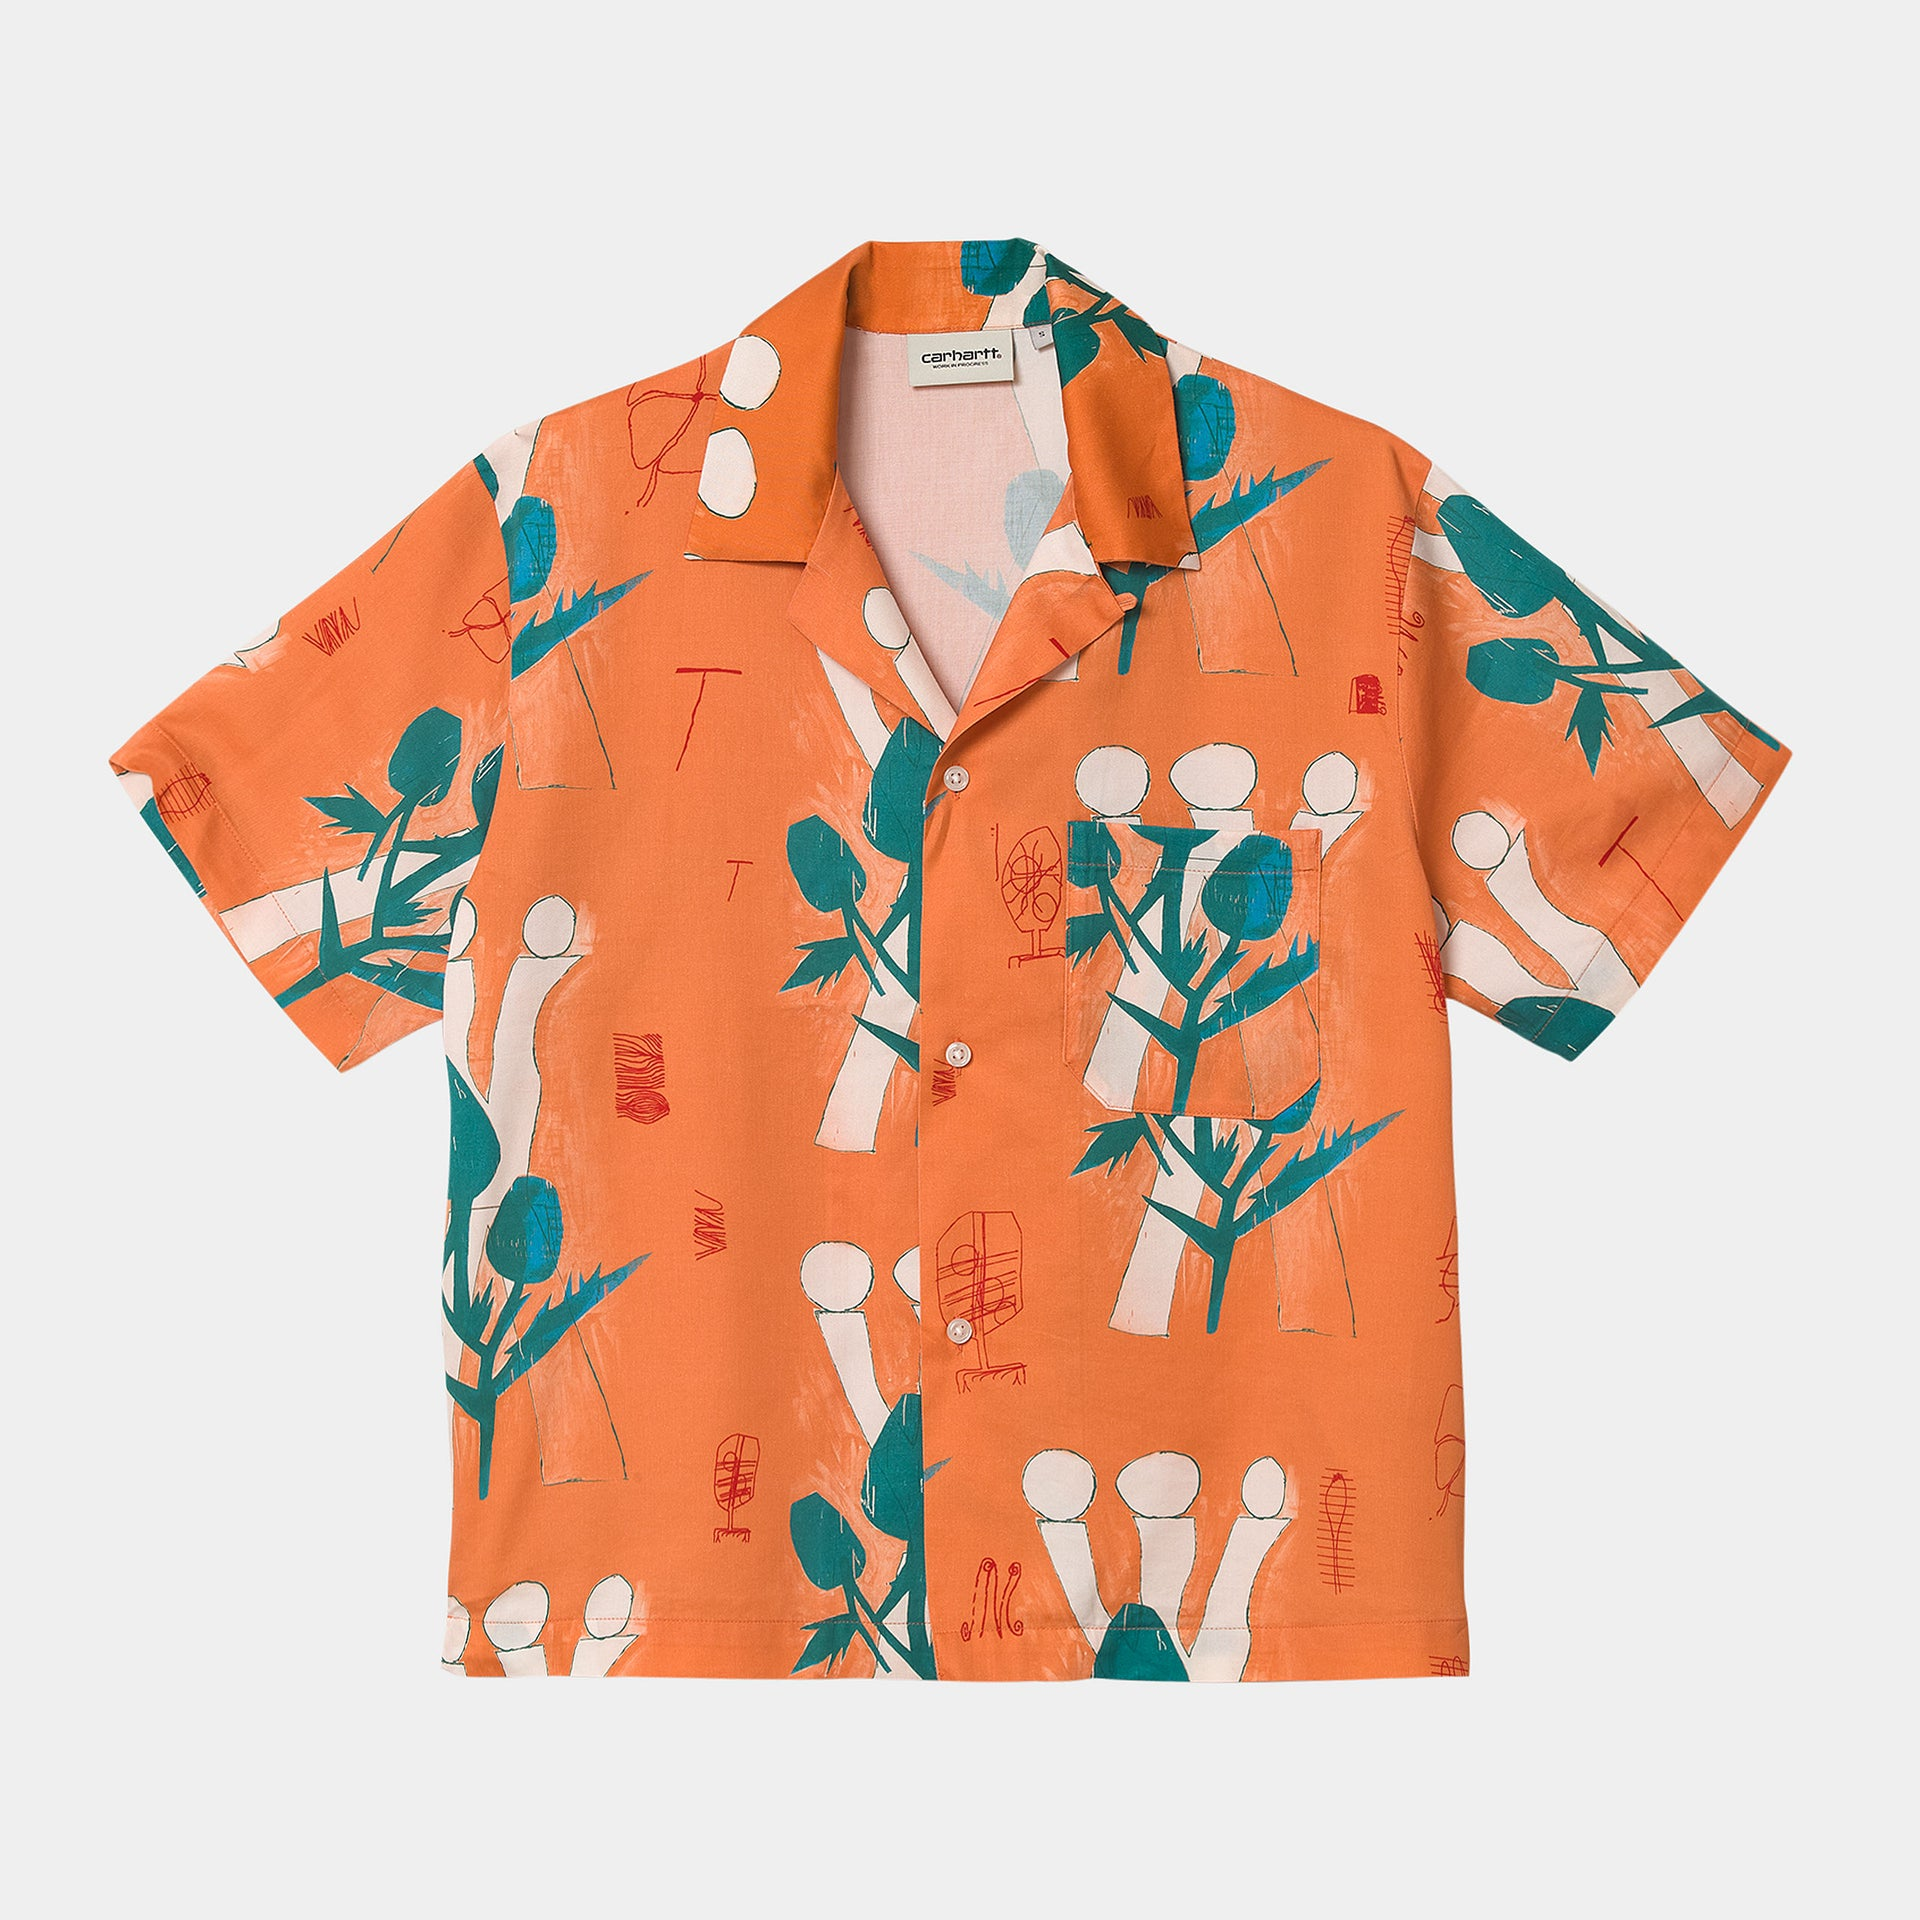 W' S/S TOM KROL FLOWERS SHIRT TOM KROL FLOWERS PRINT SHRIMP